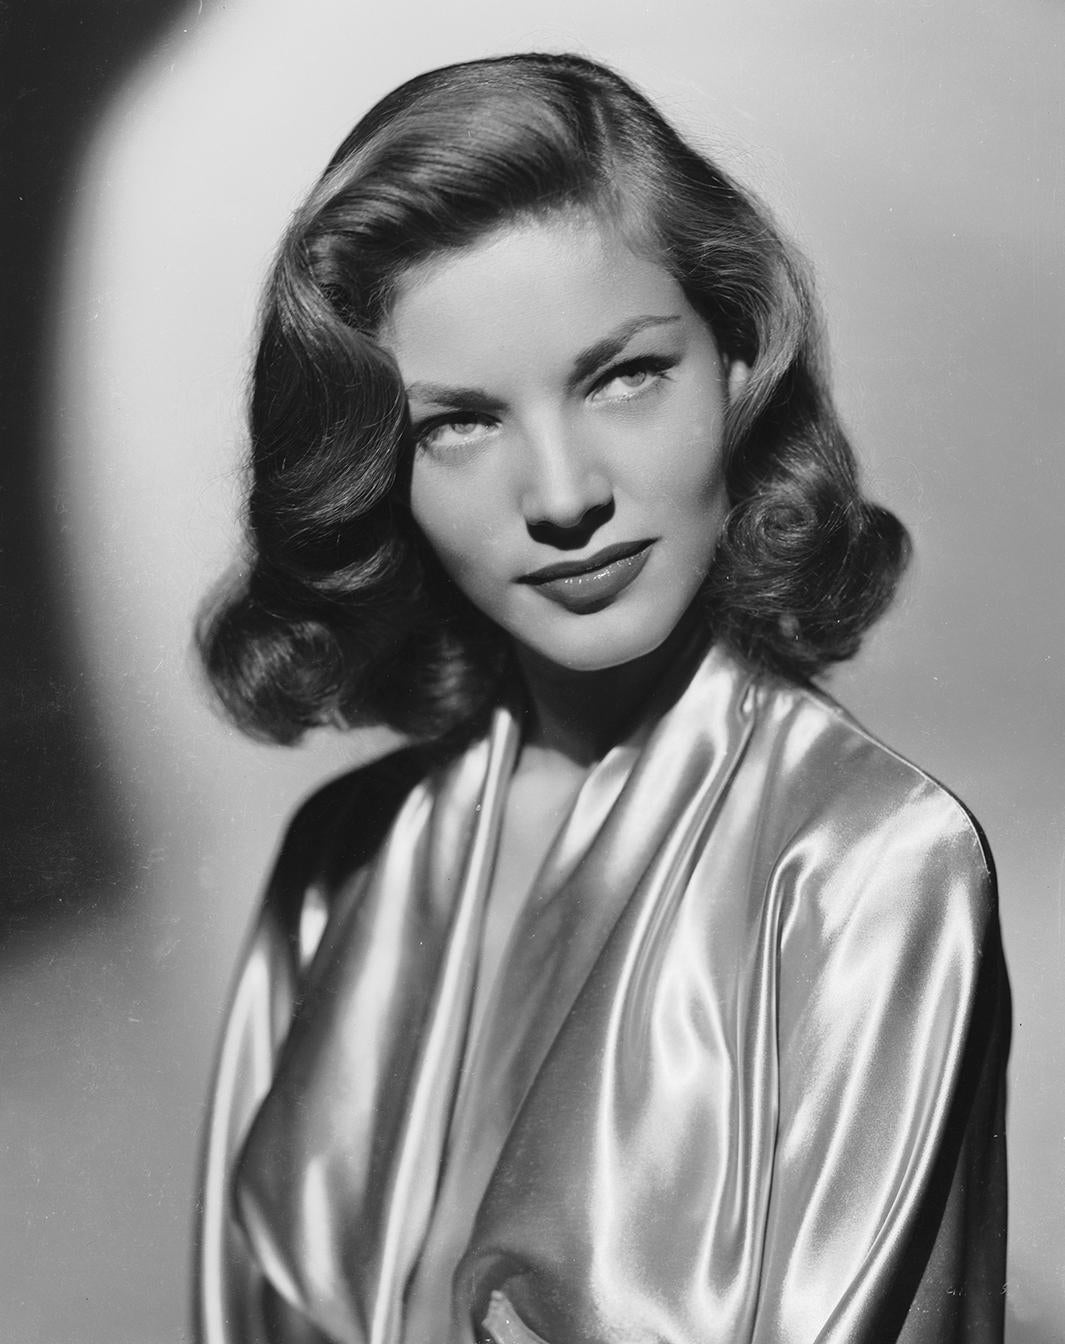 Photos of Lauren Bacall the sultry star of the Hollywoods Golden